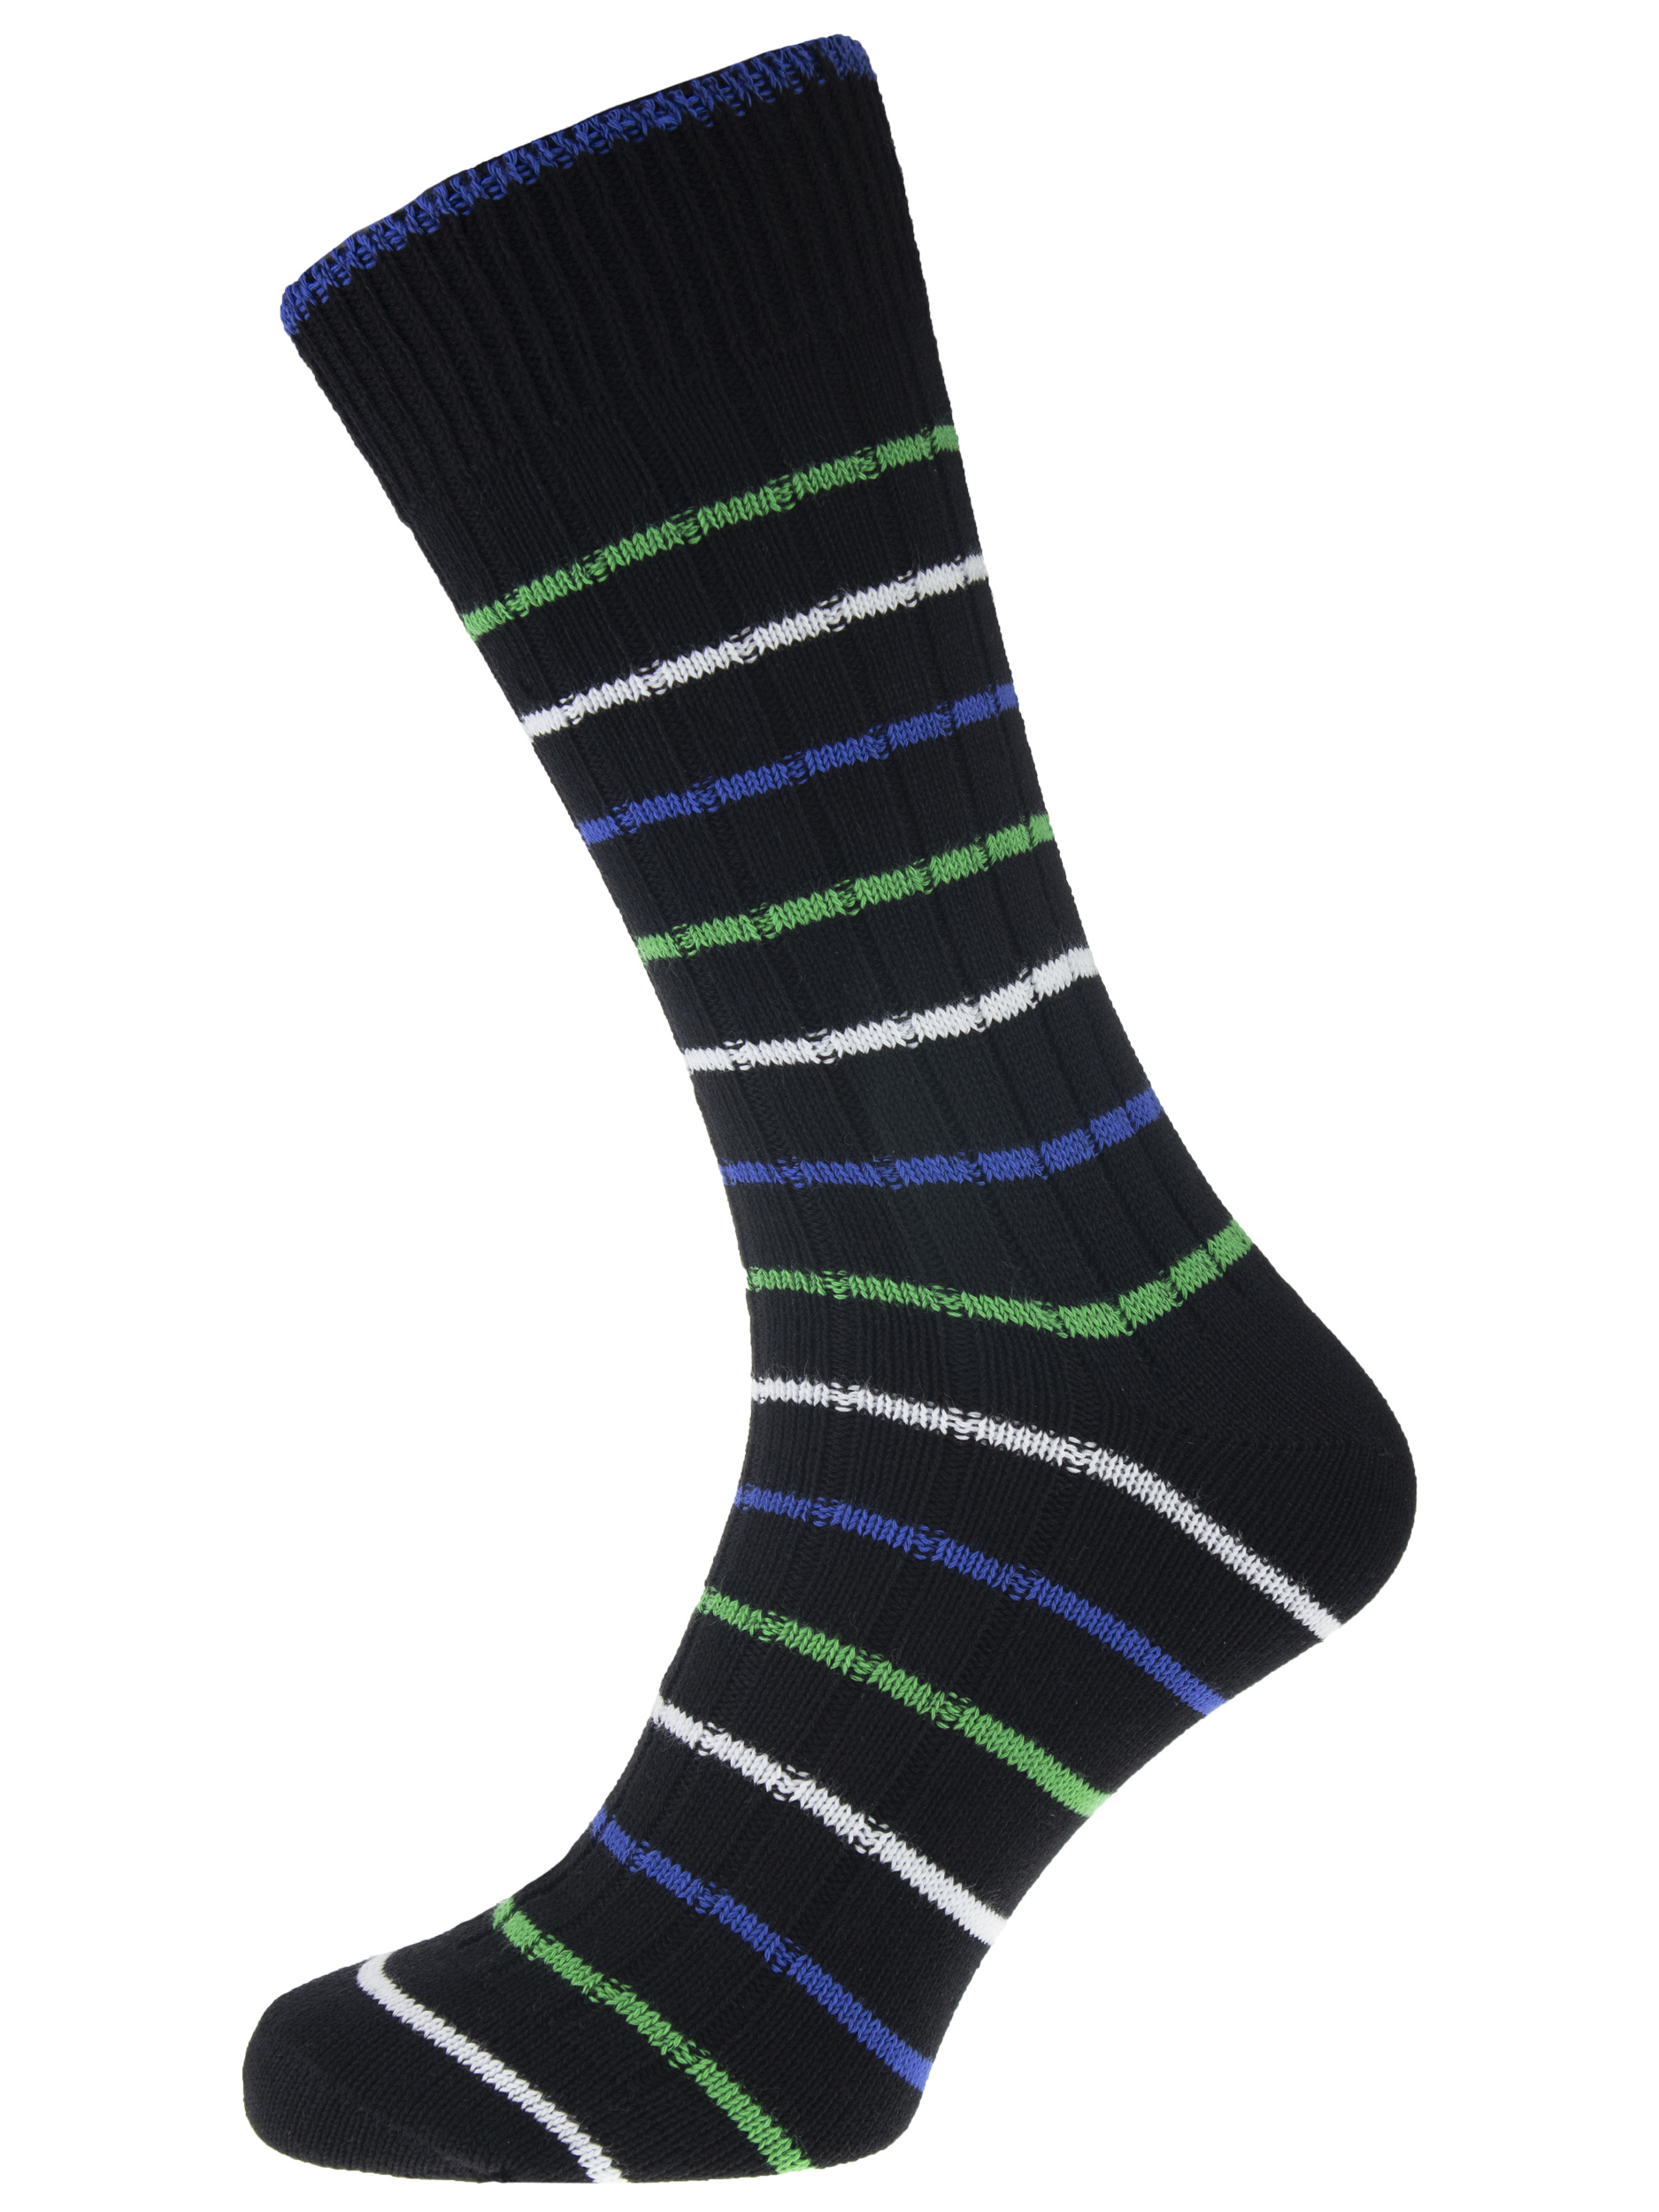 Lifestyle Men's Cotton Black W/ Royal / Green / White